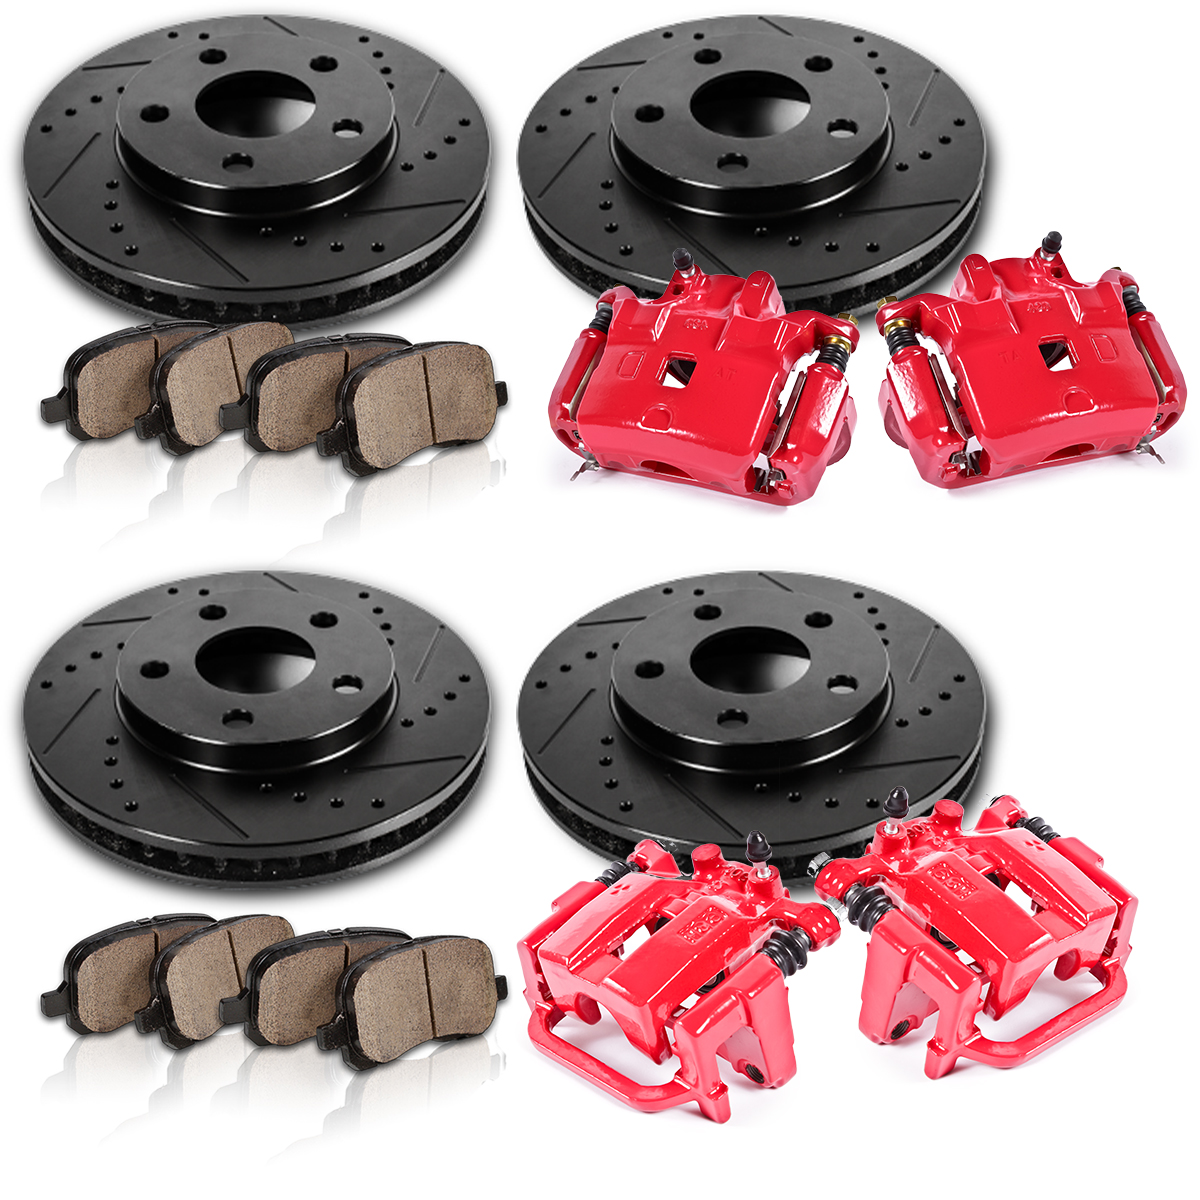 2004 Infiniti G35 Rotors: Front And Rear Red Calipers Rotors Pads FITS 2002 2003